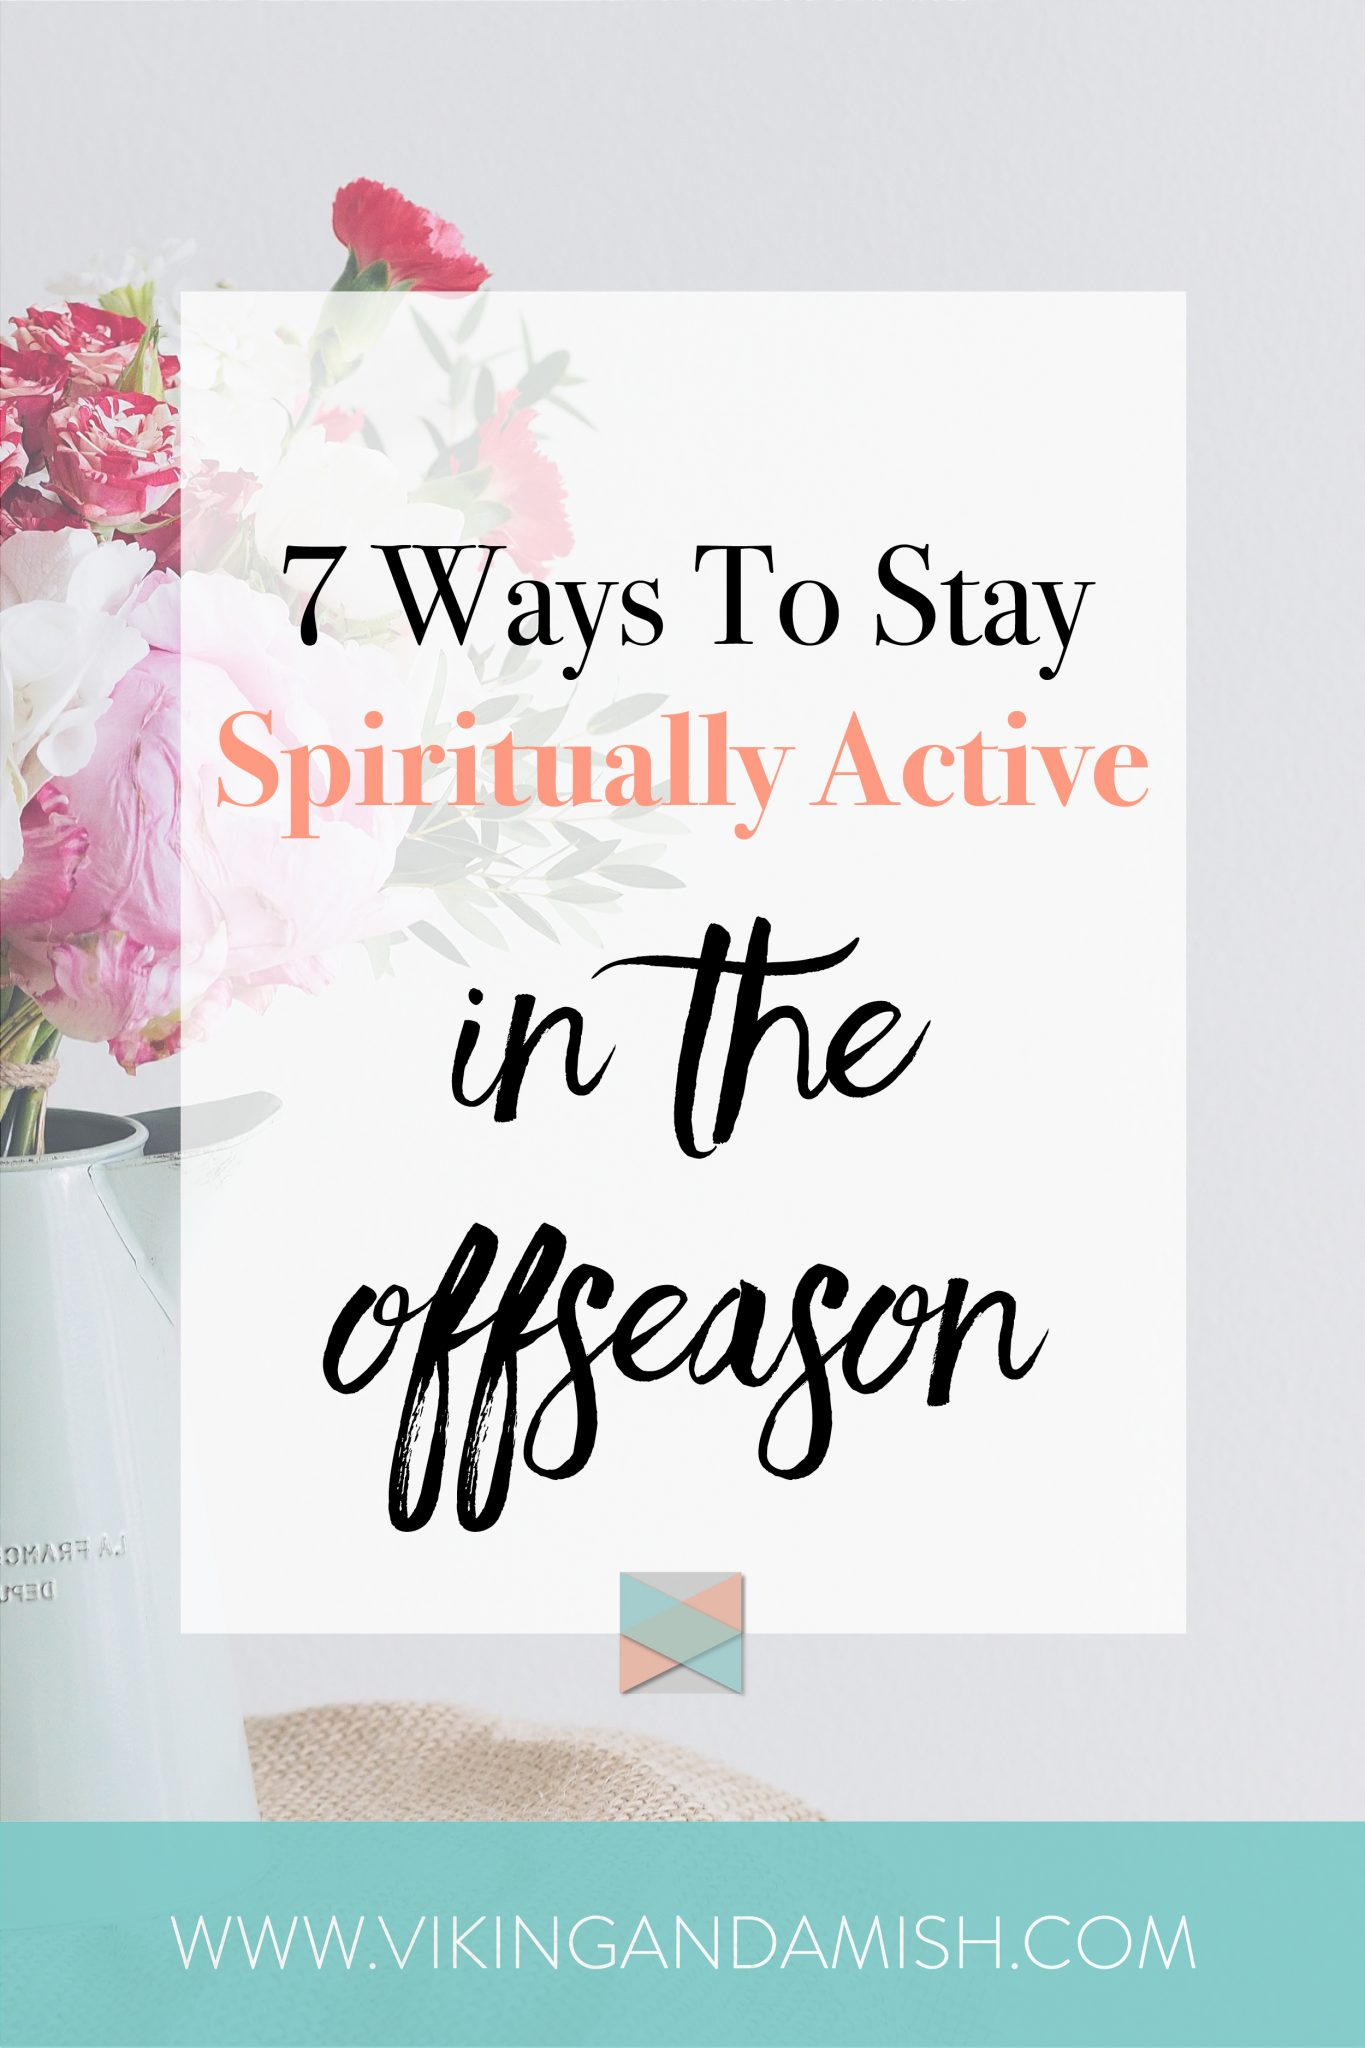 Have you found yourself wondering how to stay spiritually active in the offseason from ministry and church activities? Read here what I am learning through my offseason and how it is making me sharper as a Christian | www.vikingandamish.com